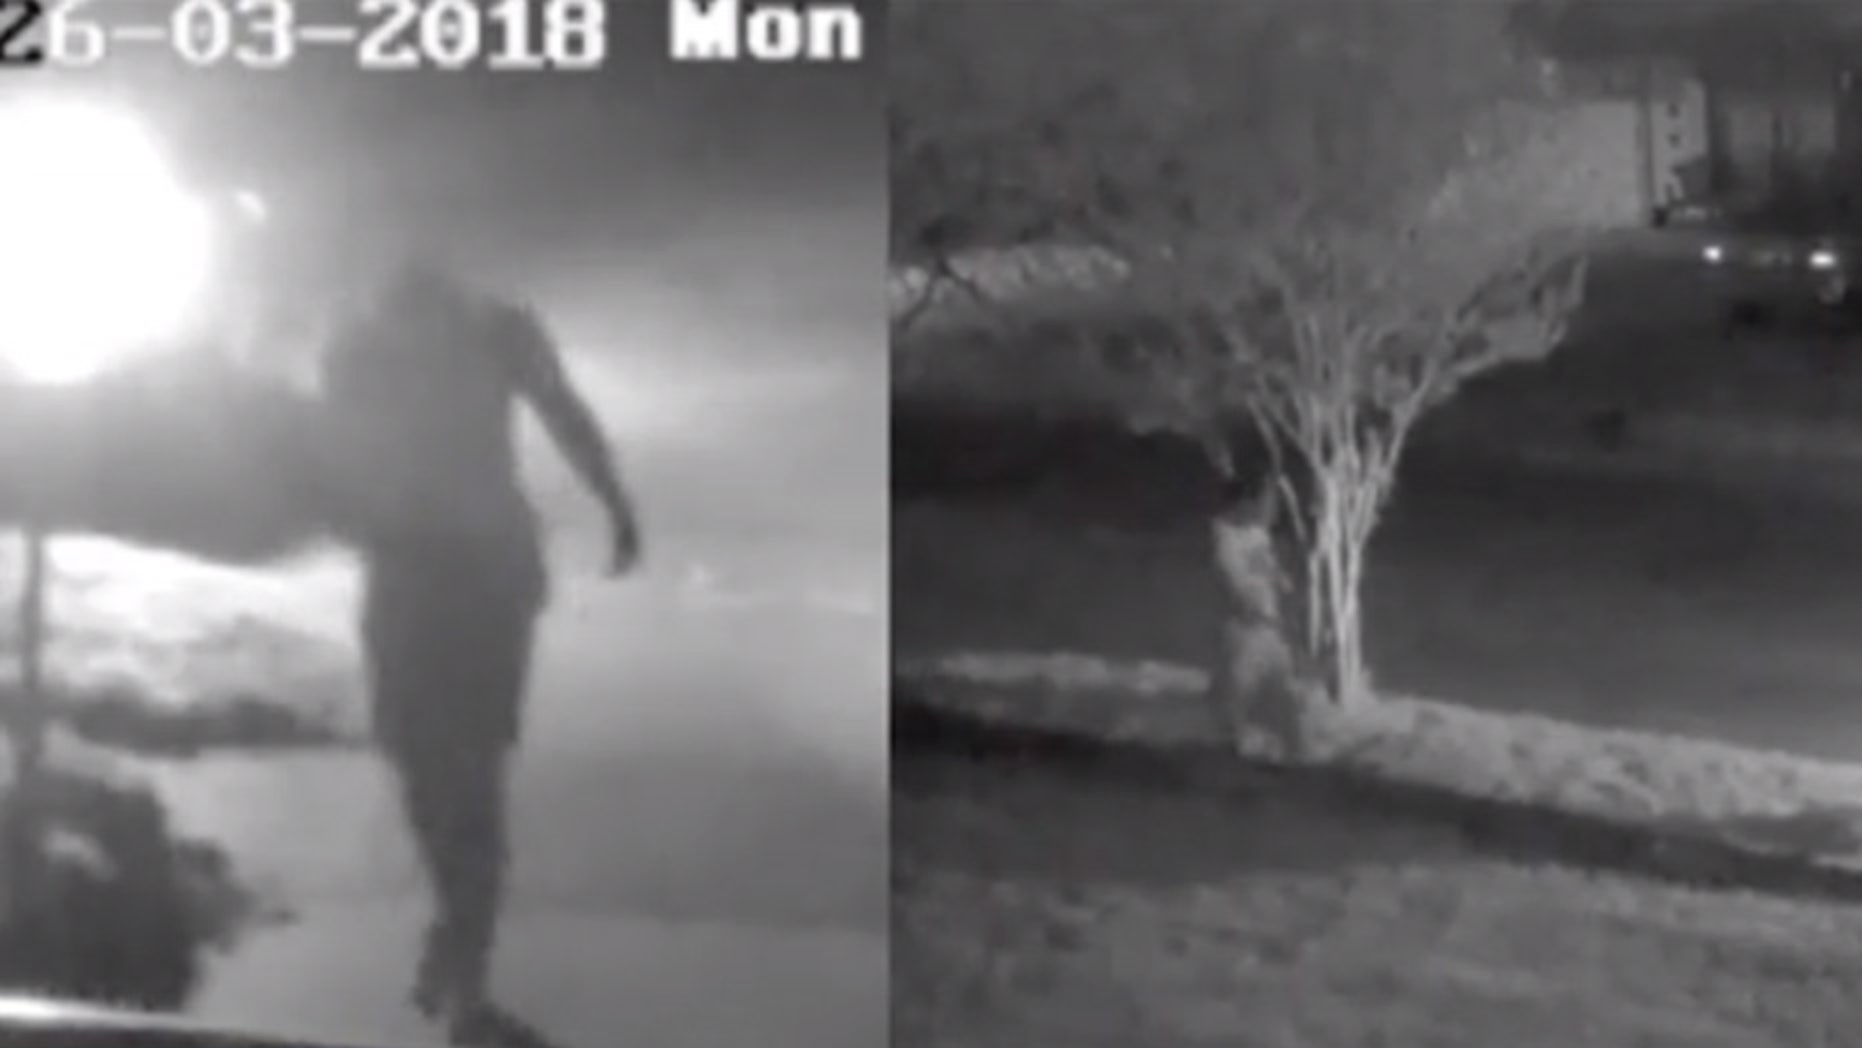 A man who swings his arms in a distinct walking motion is suspected in the murder of a Marine veteran in the Dallas area in March.